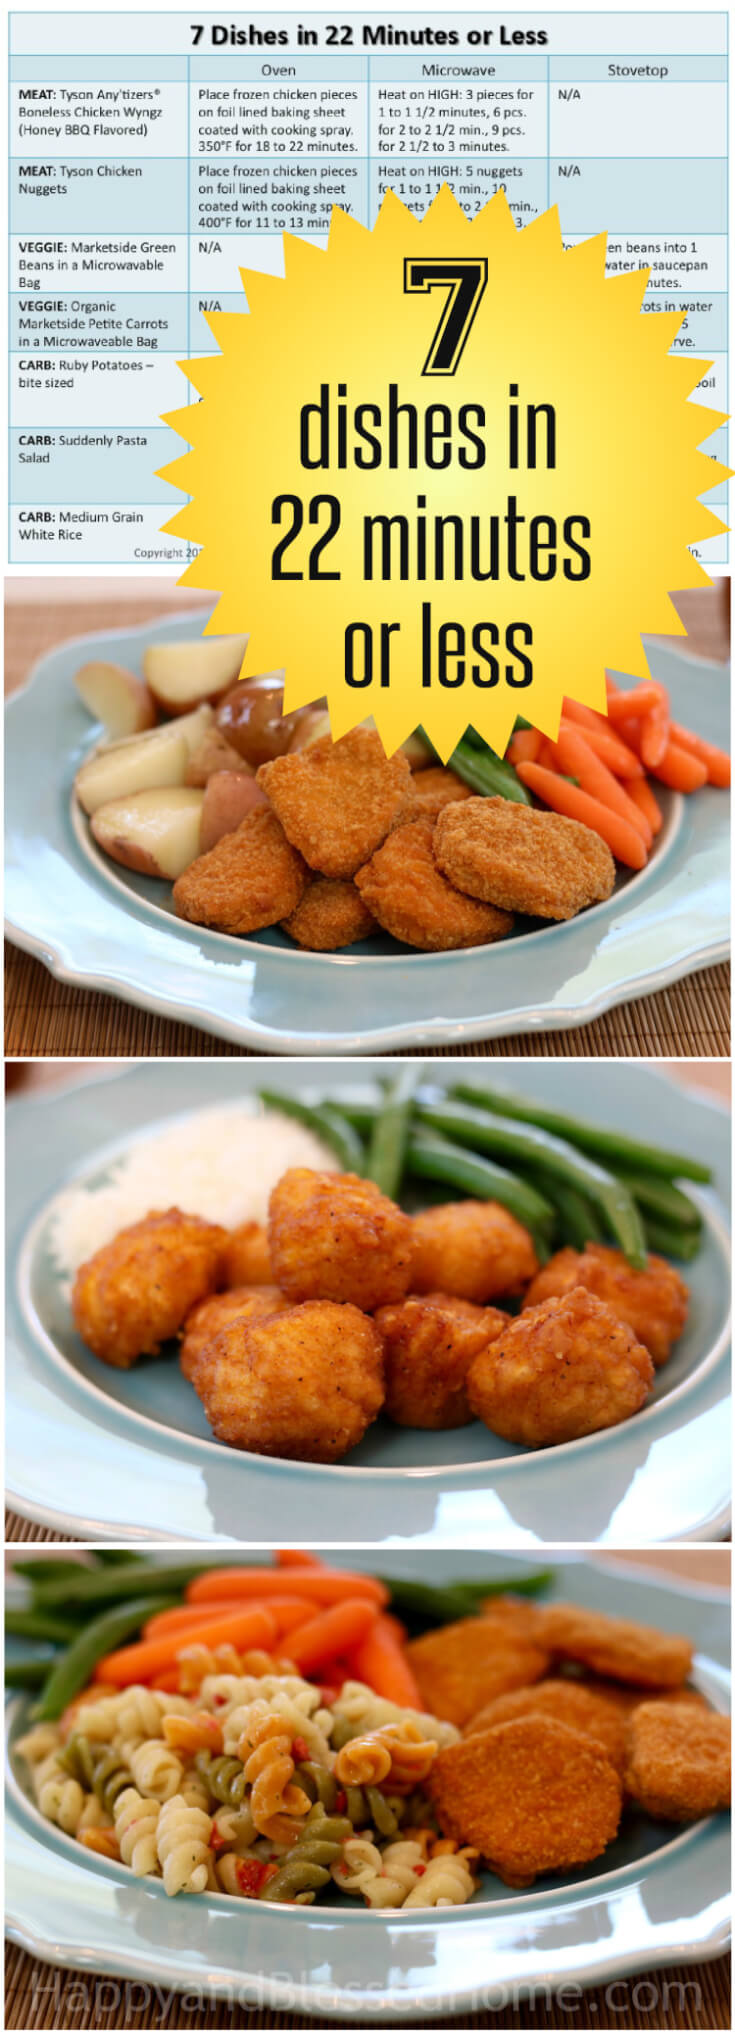 I love these simple meal solutions for busy weeknights - 7 dishes in 22 minutes or less